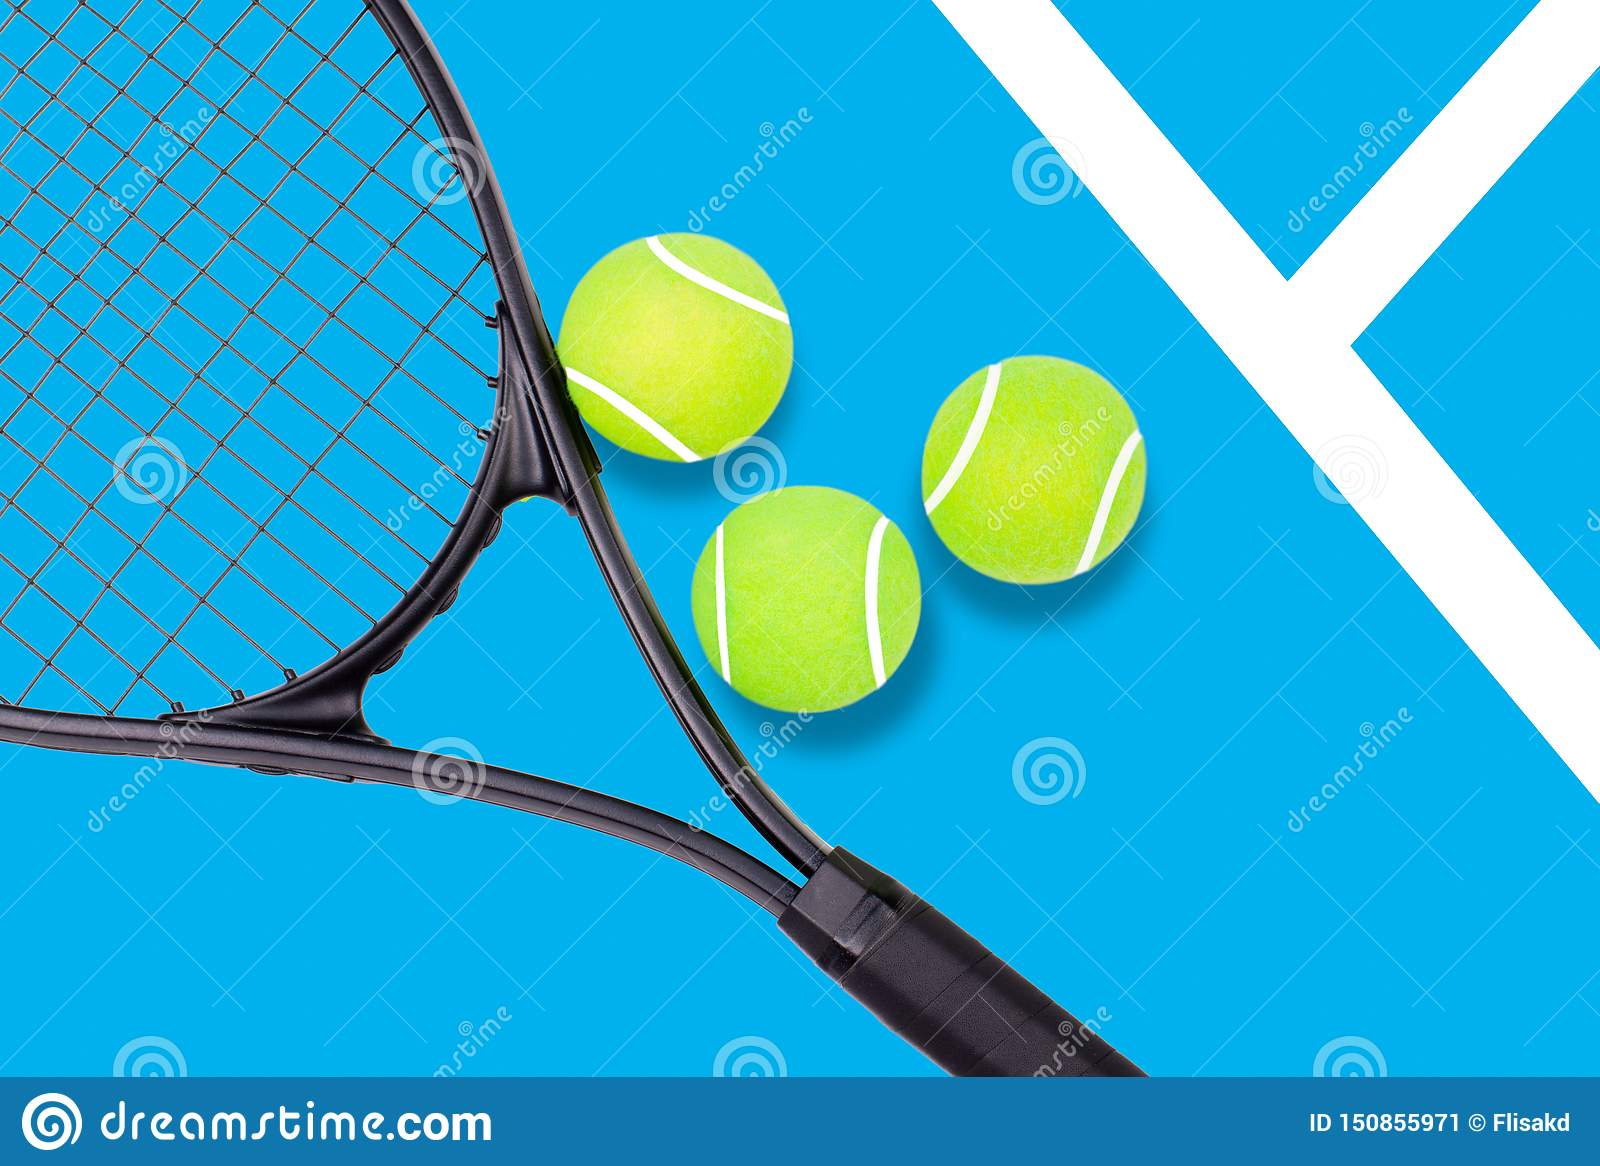 Tennis racket and ball sports on blue background